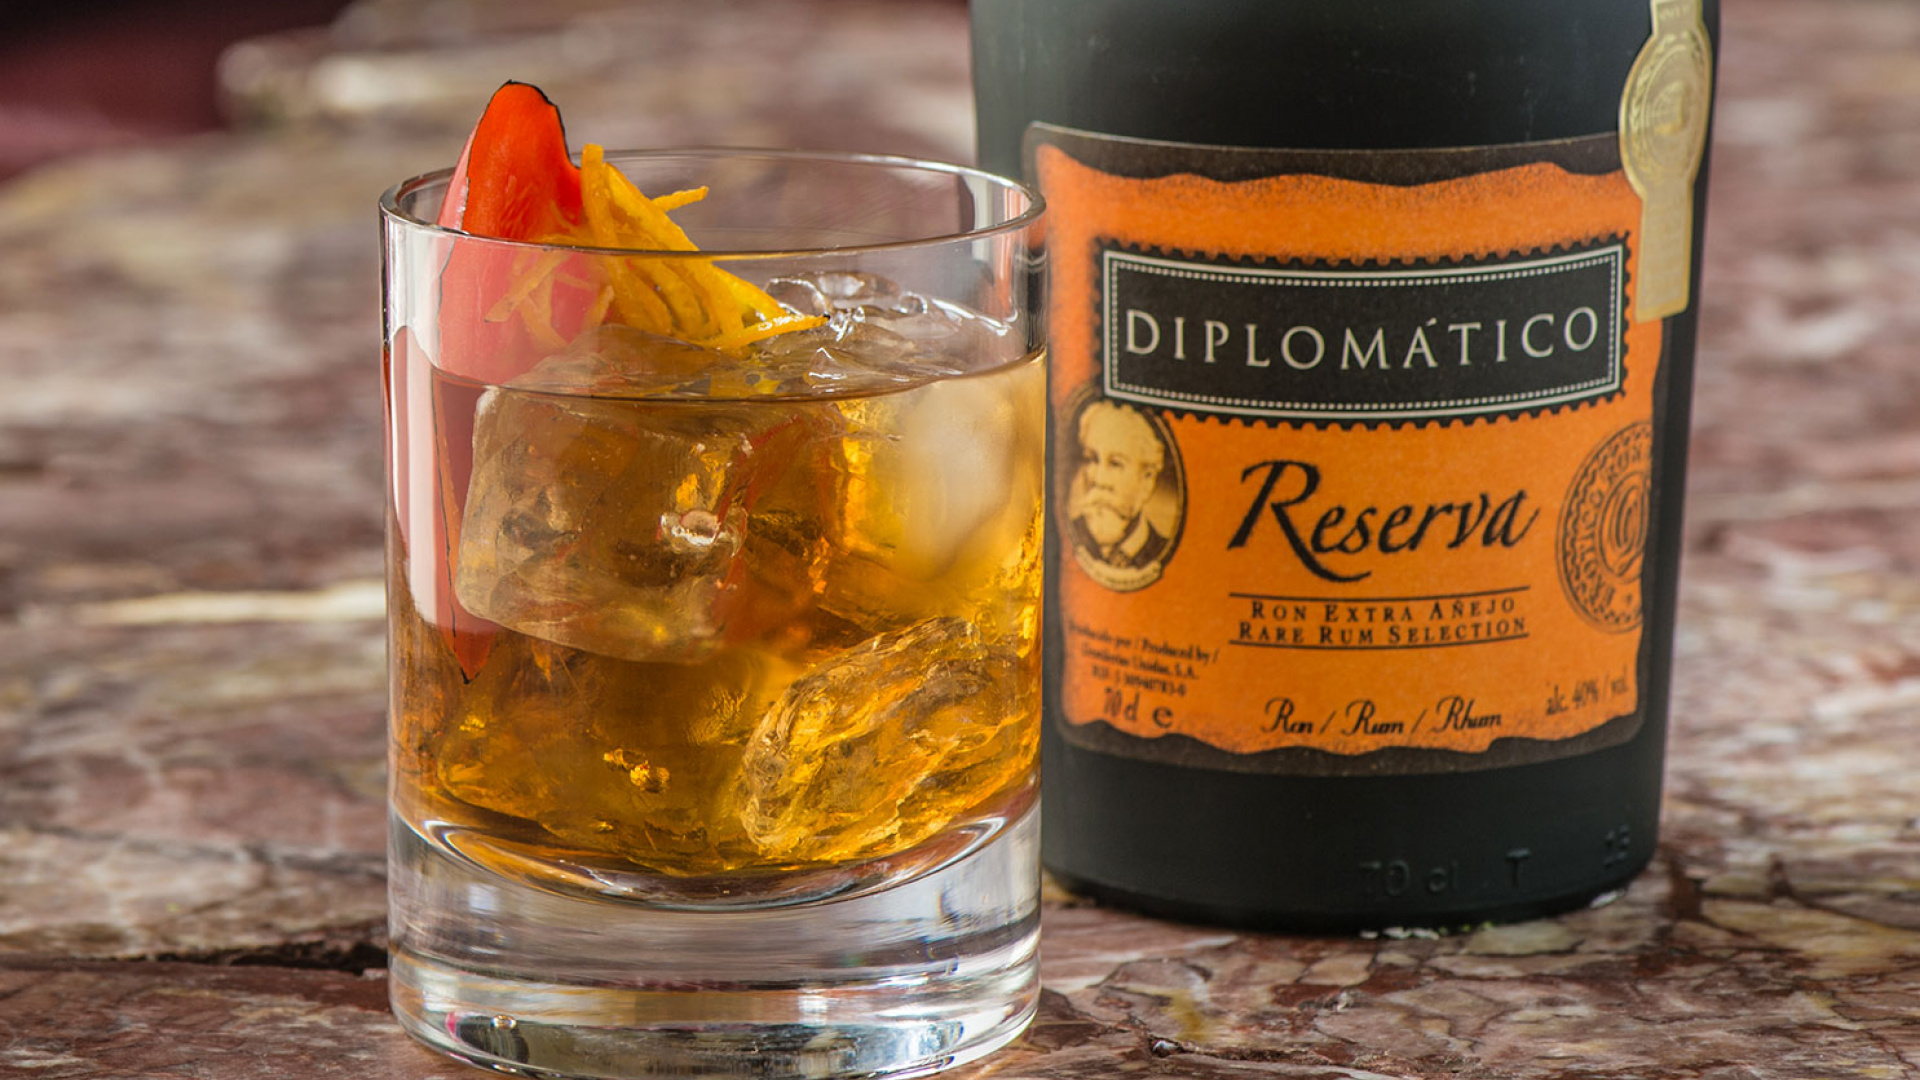 Diplomatico's sweet charred of mine cocktail recipe